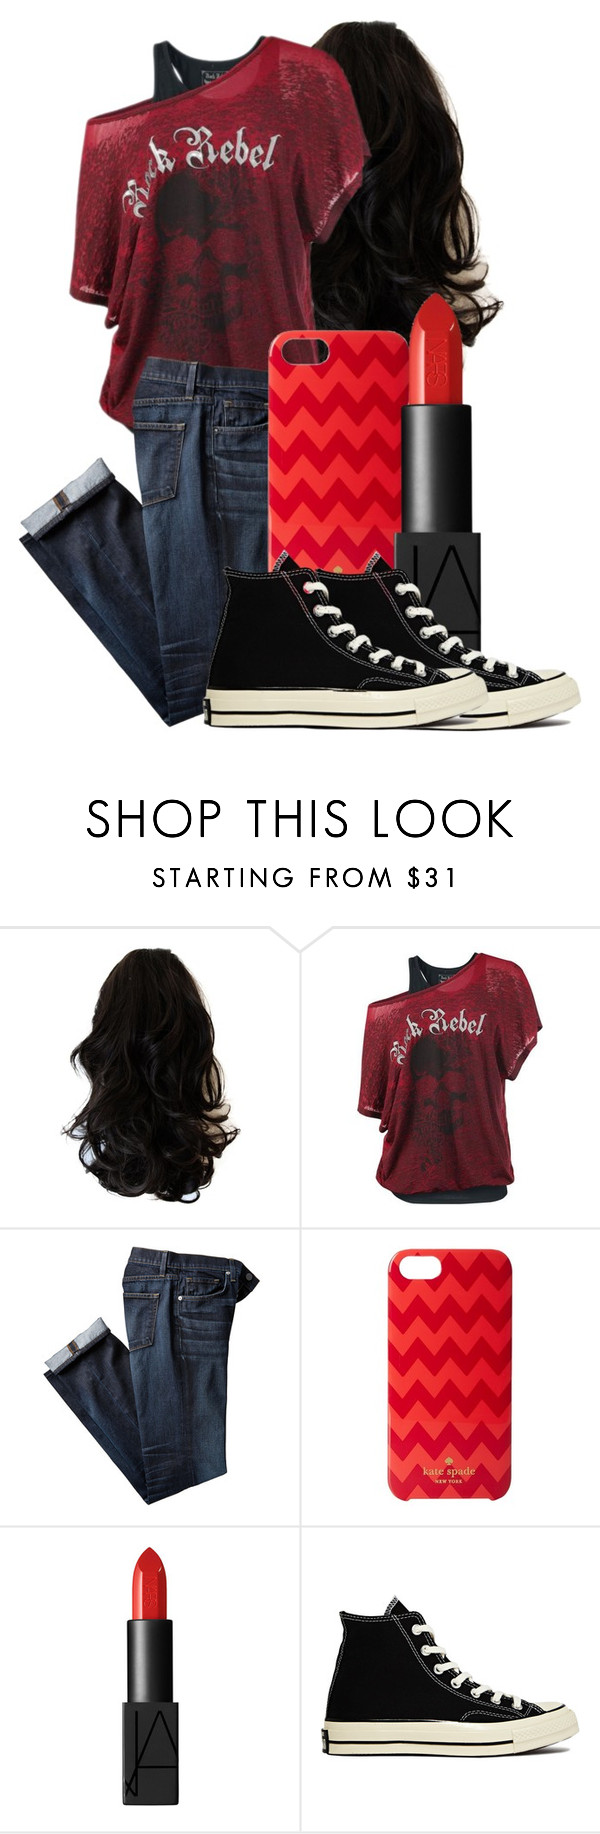 """Untitled #391"" by artlove1997 ❤ liked on Polyvore featuring Kate Spade, NARS Cosmetics and Converse"